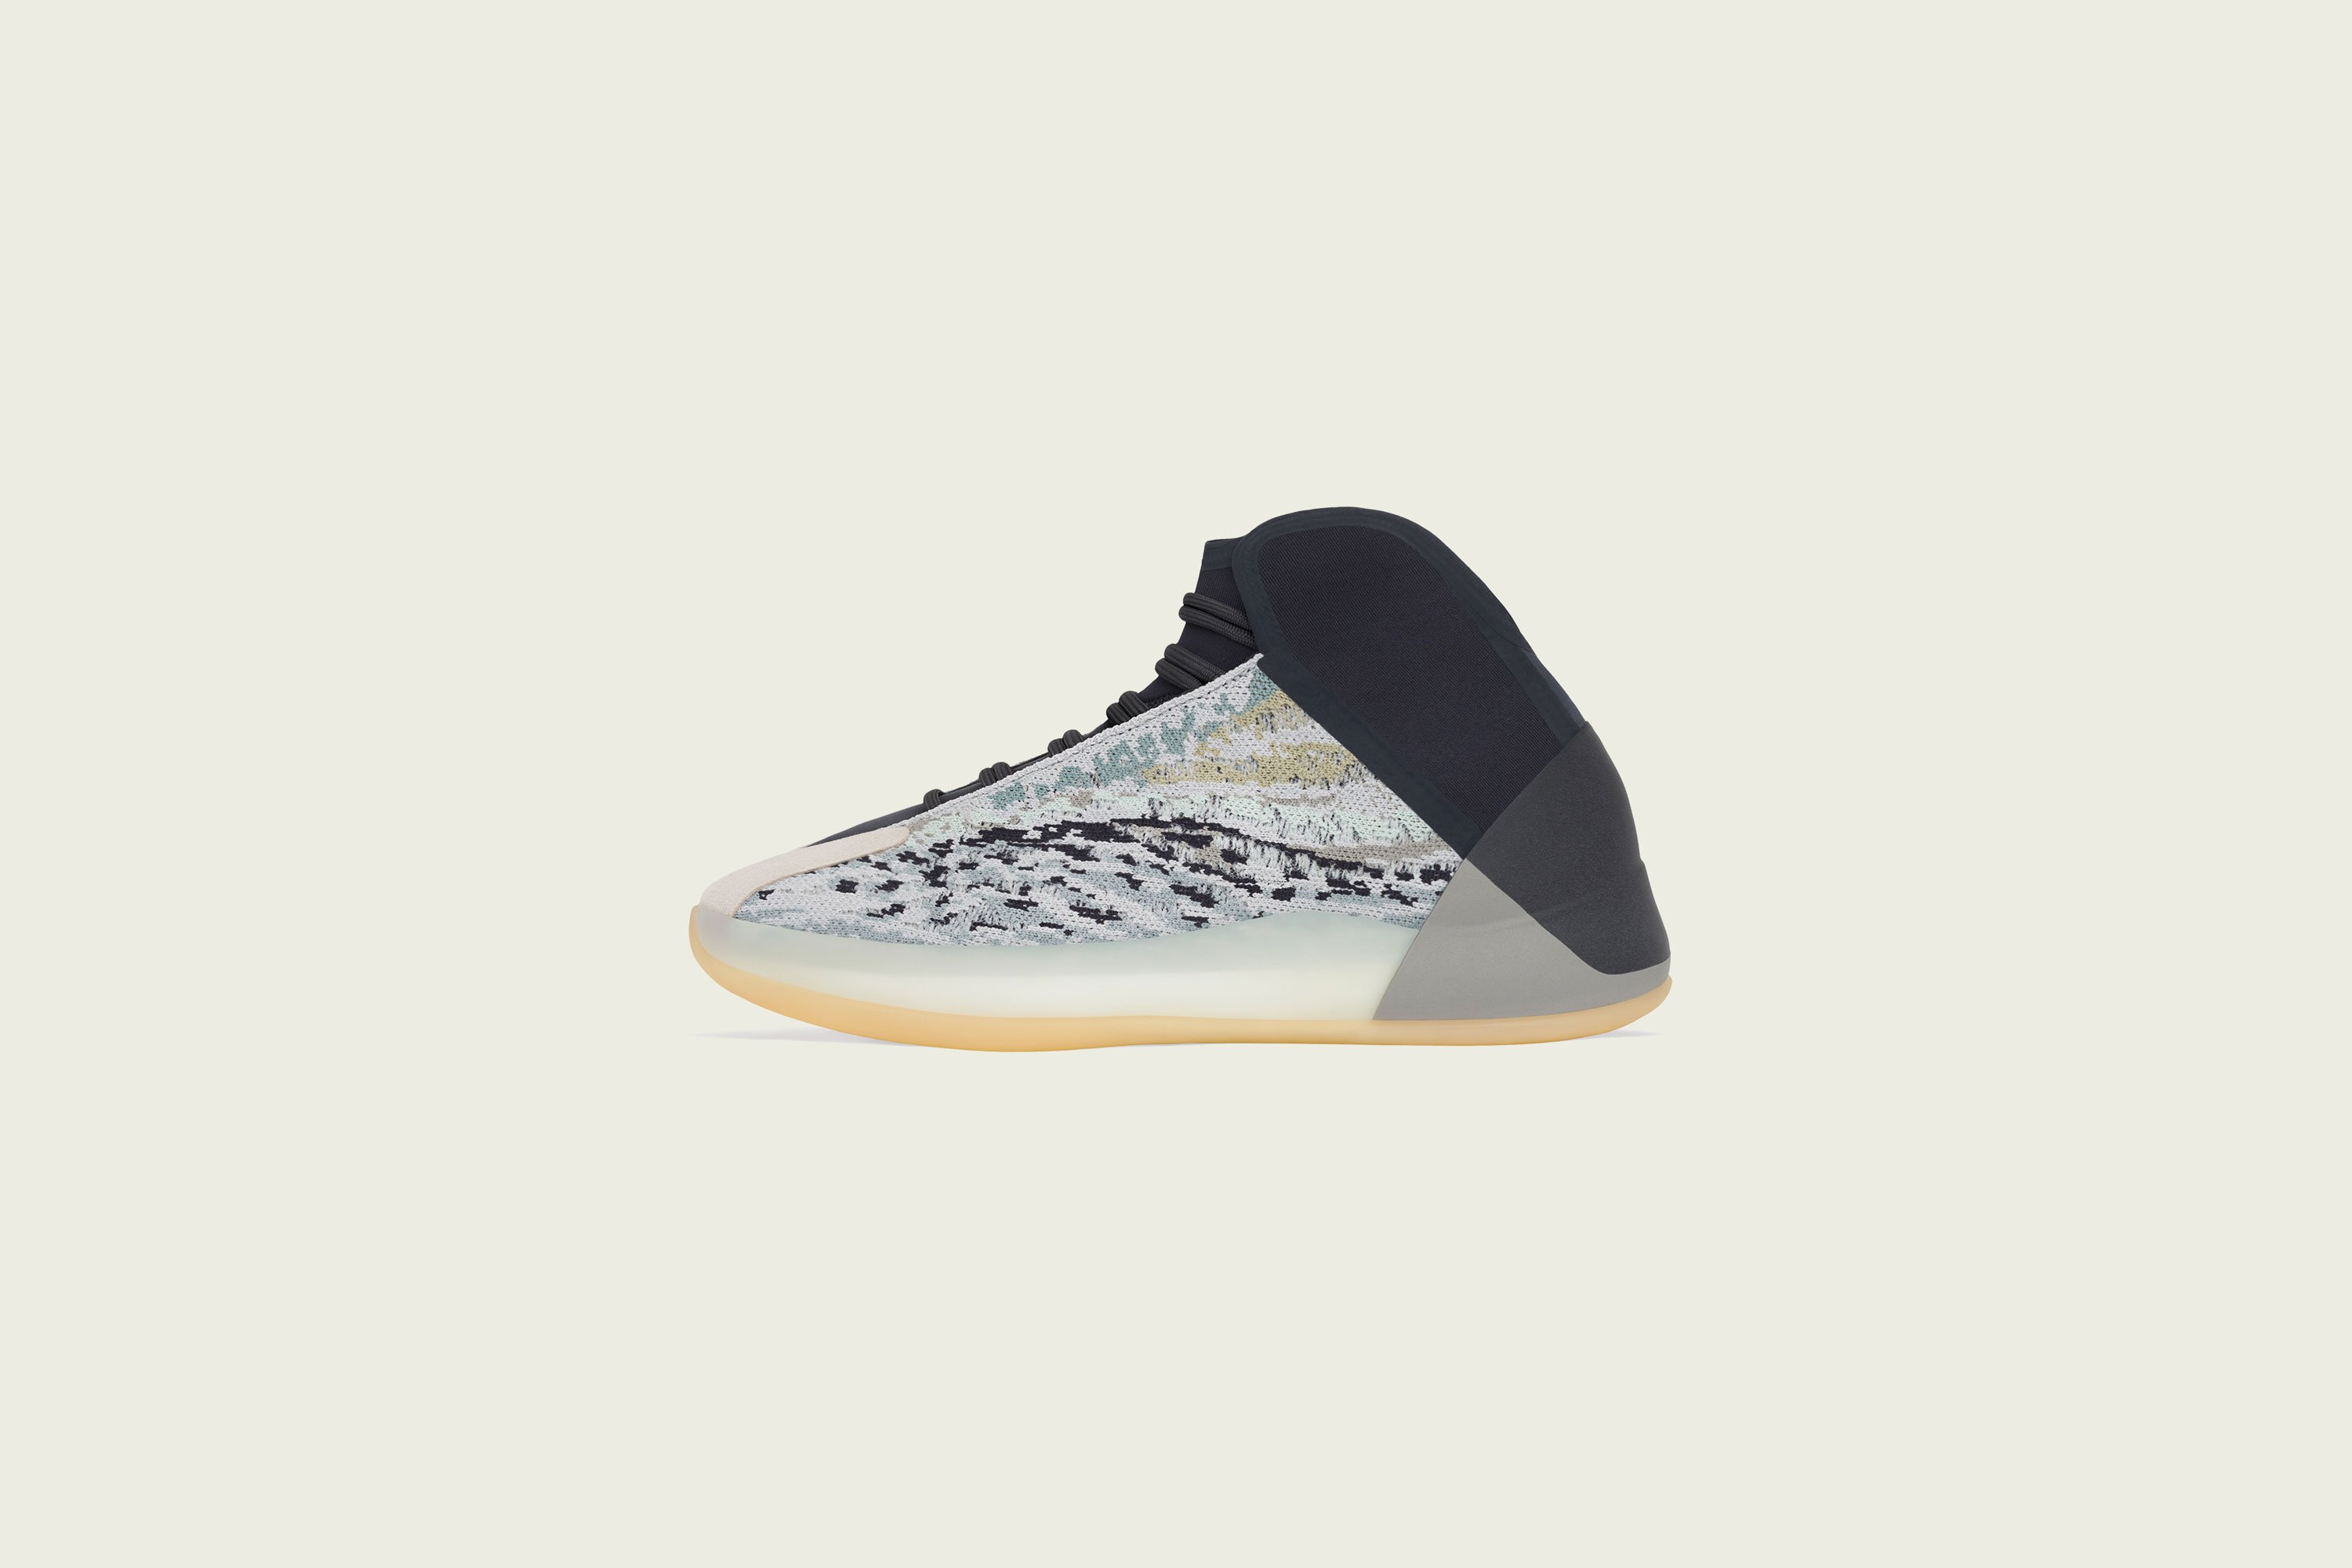 Up There Store - adidas Originals Yeezy Boost QNTM 'Sea Teal'